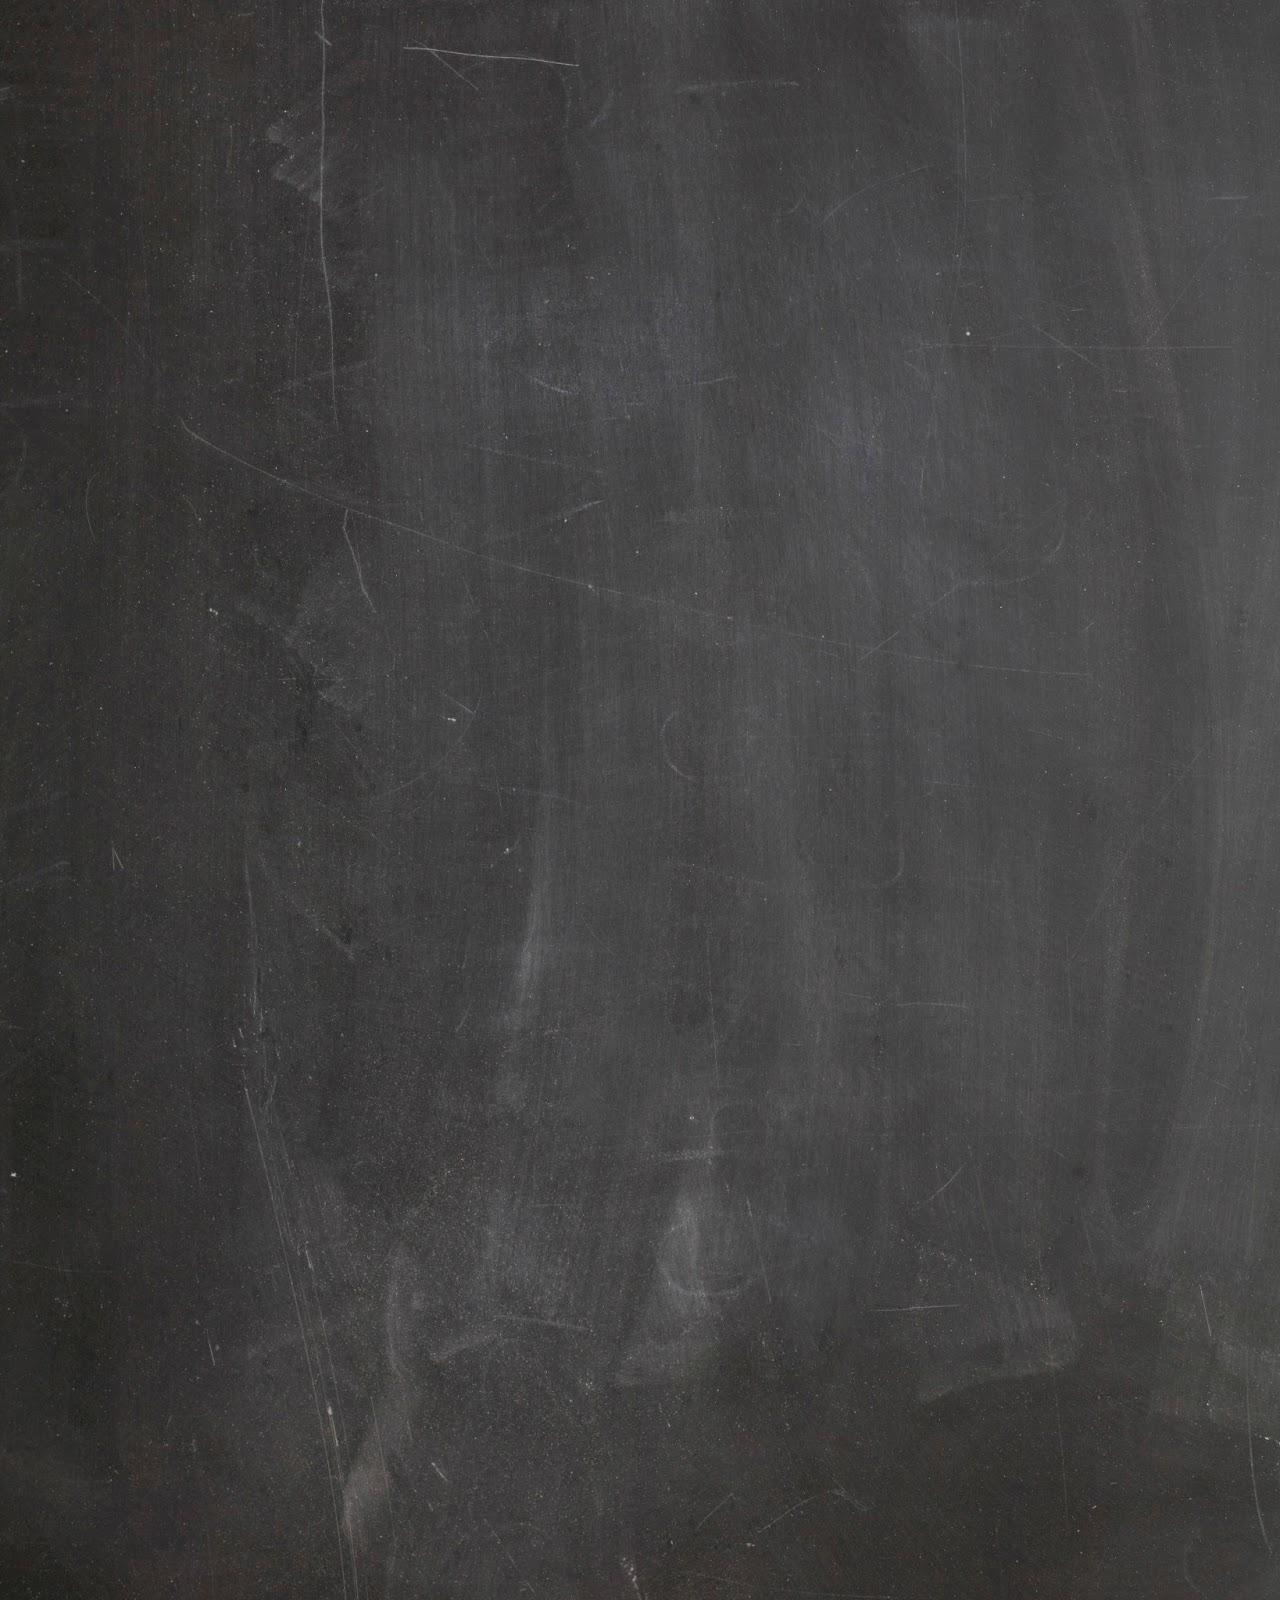 free chalkboard background template download